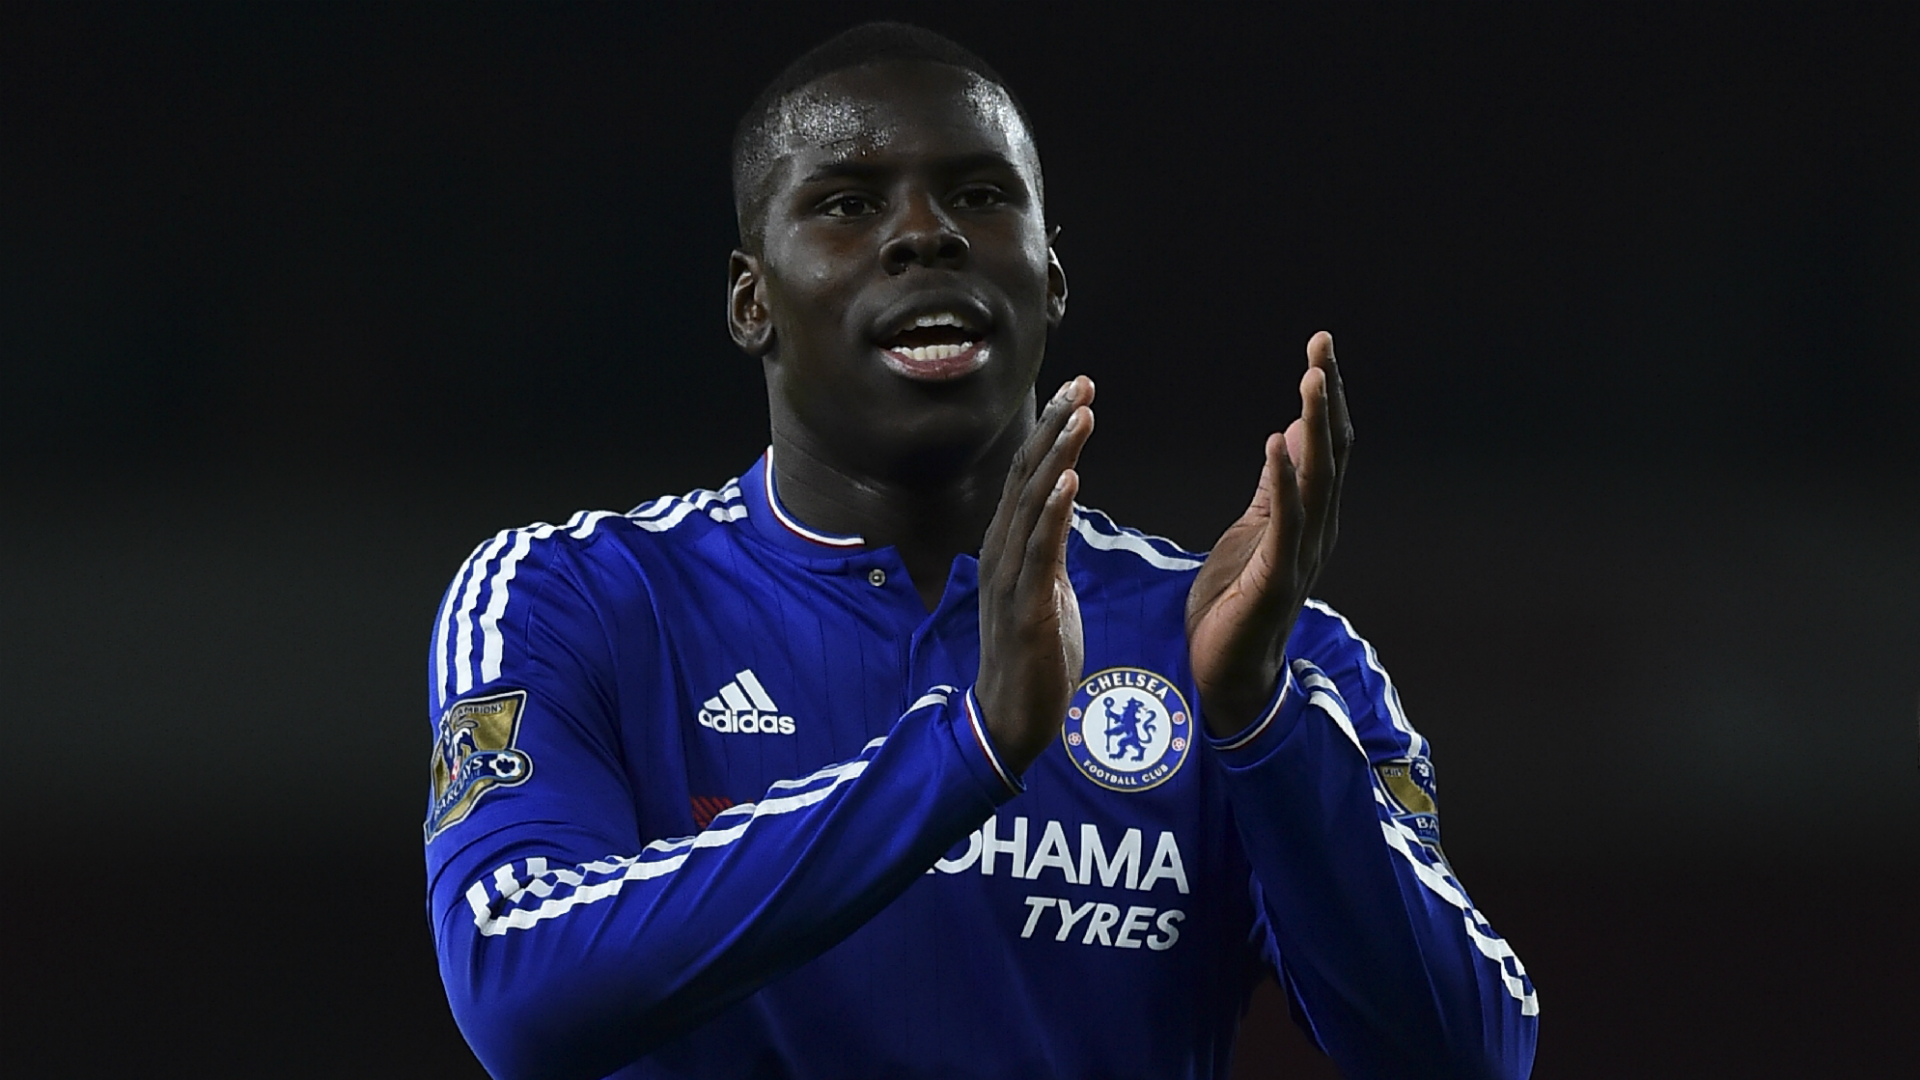 FIFA 17's most promising youngsters | Kurt Zouma